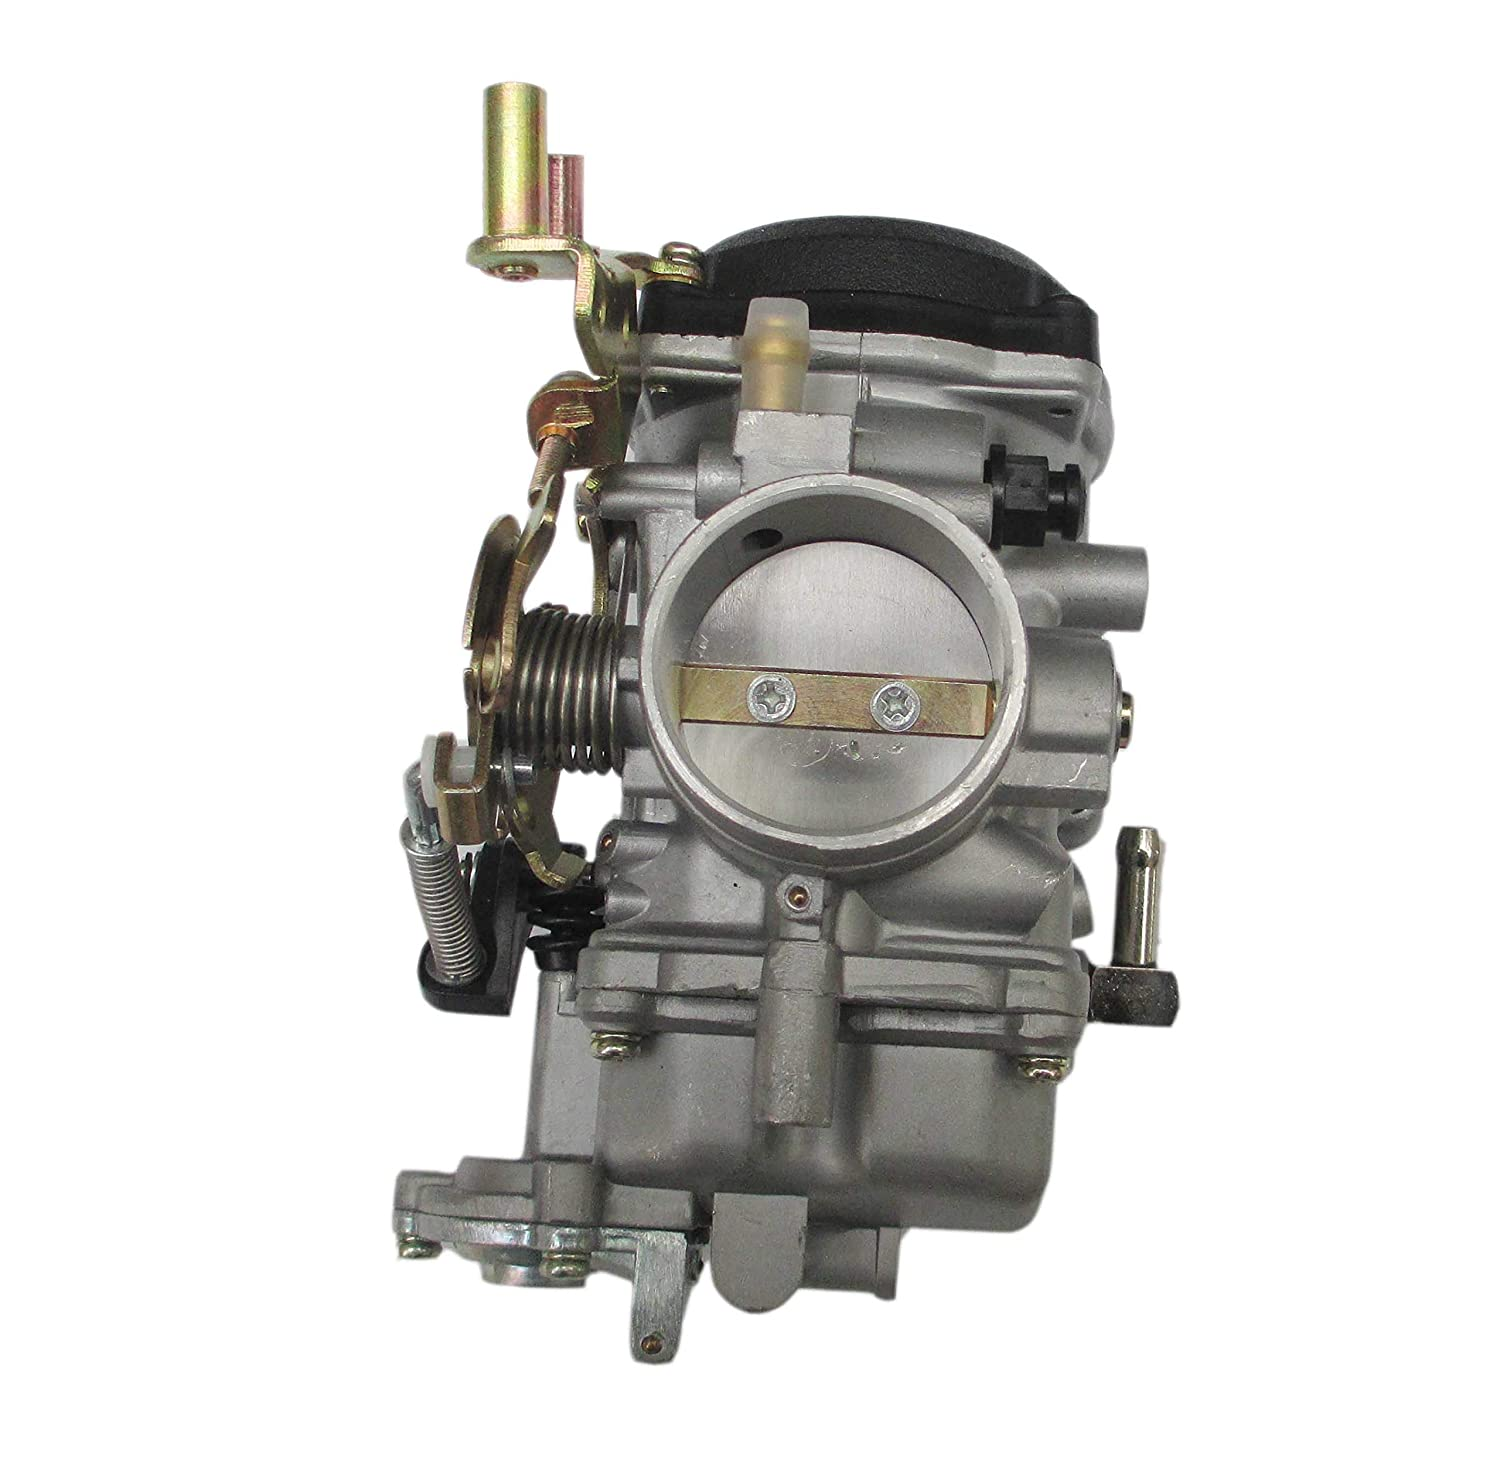 Fuel Supply Aluminum Motorcycle Carburetor Carb For Harley Davidson Dyna Wide Super Glide Fxd Low Rider Softail Springer Fxst Twin Cam Fine Quality